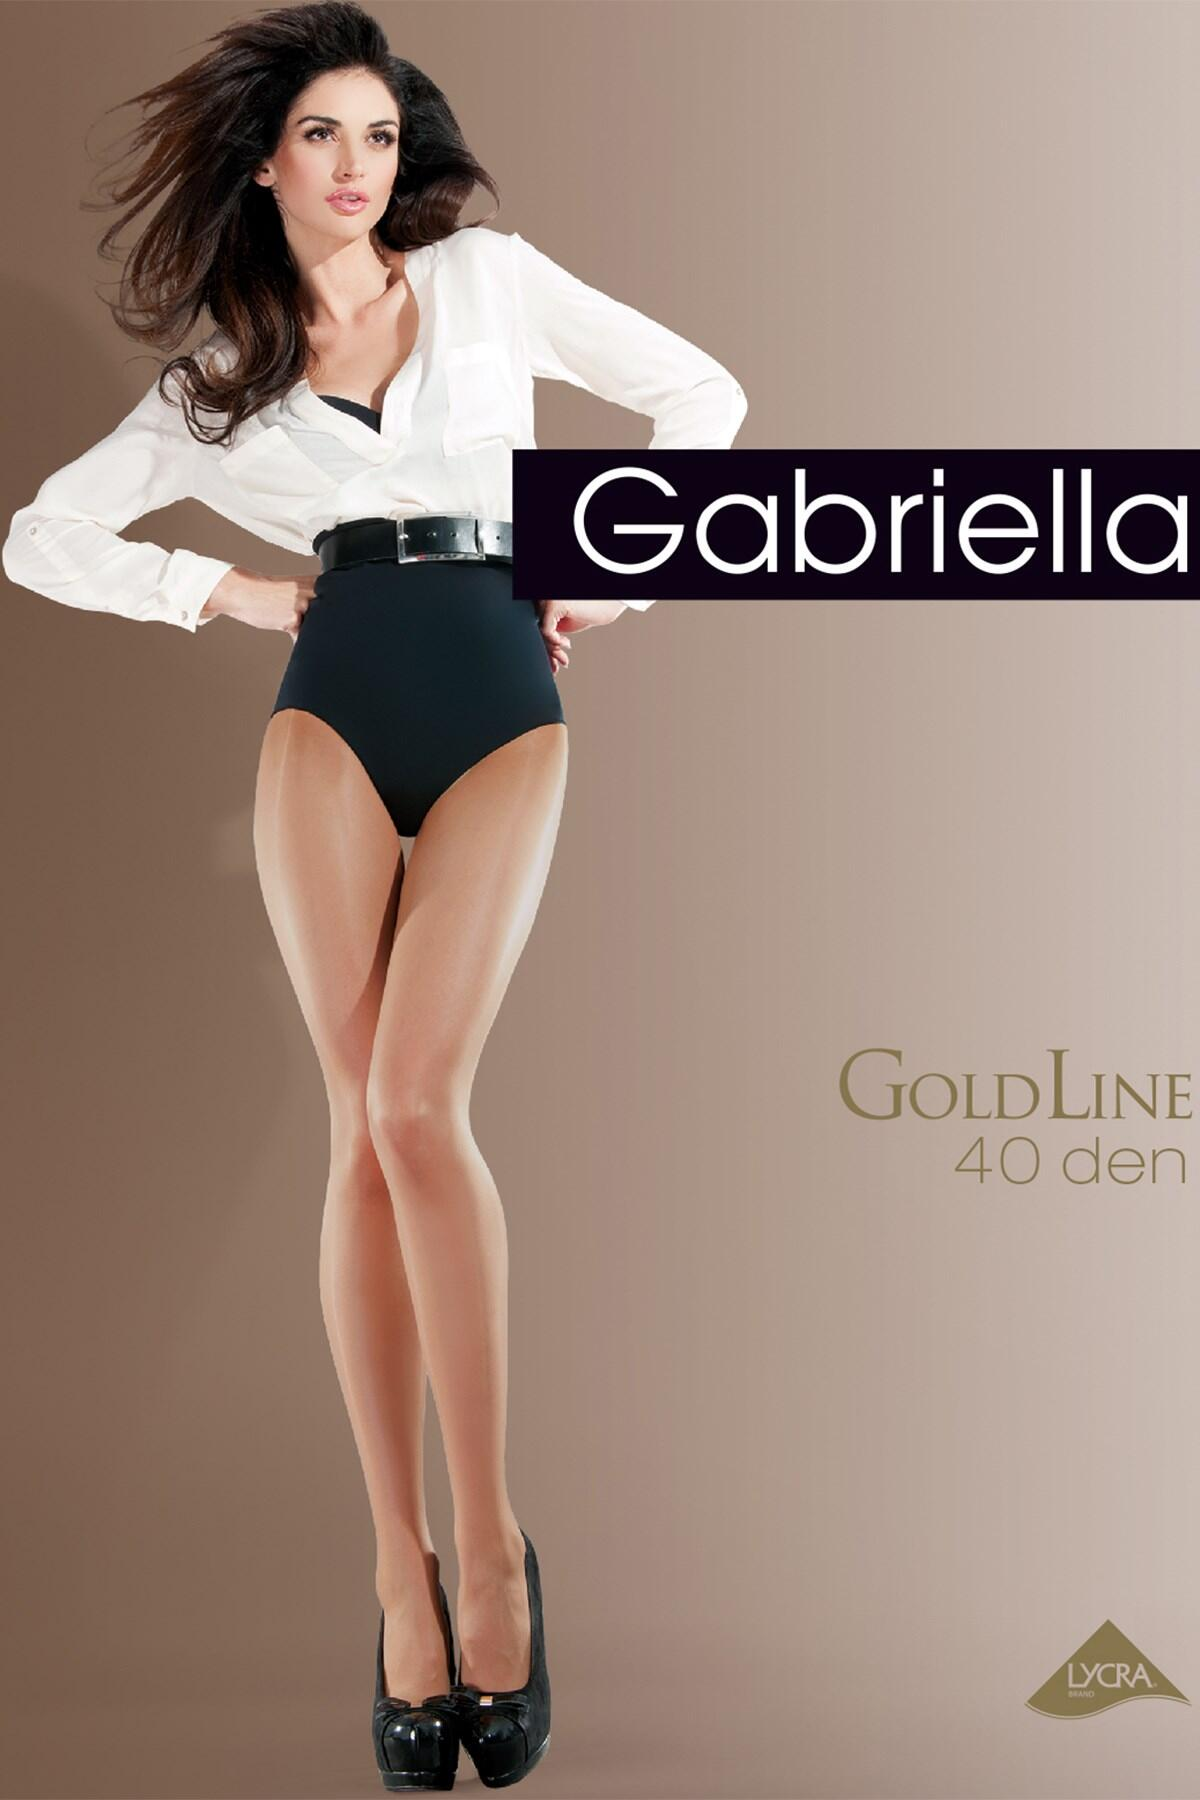 Gabriella Classic 40 Denier - Neutral